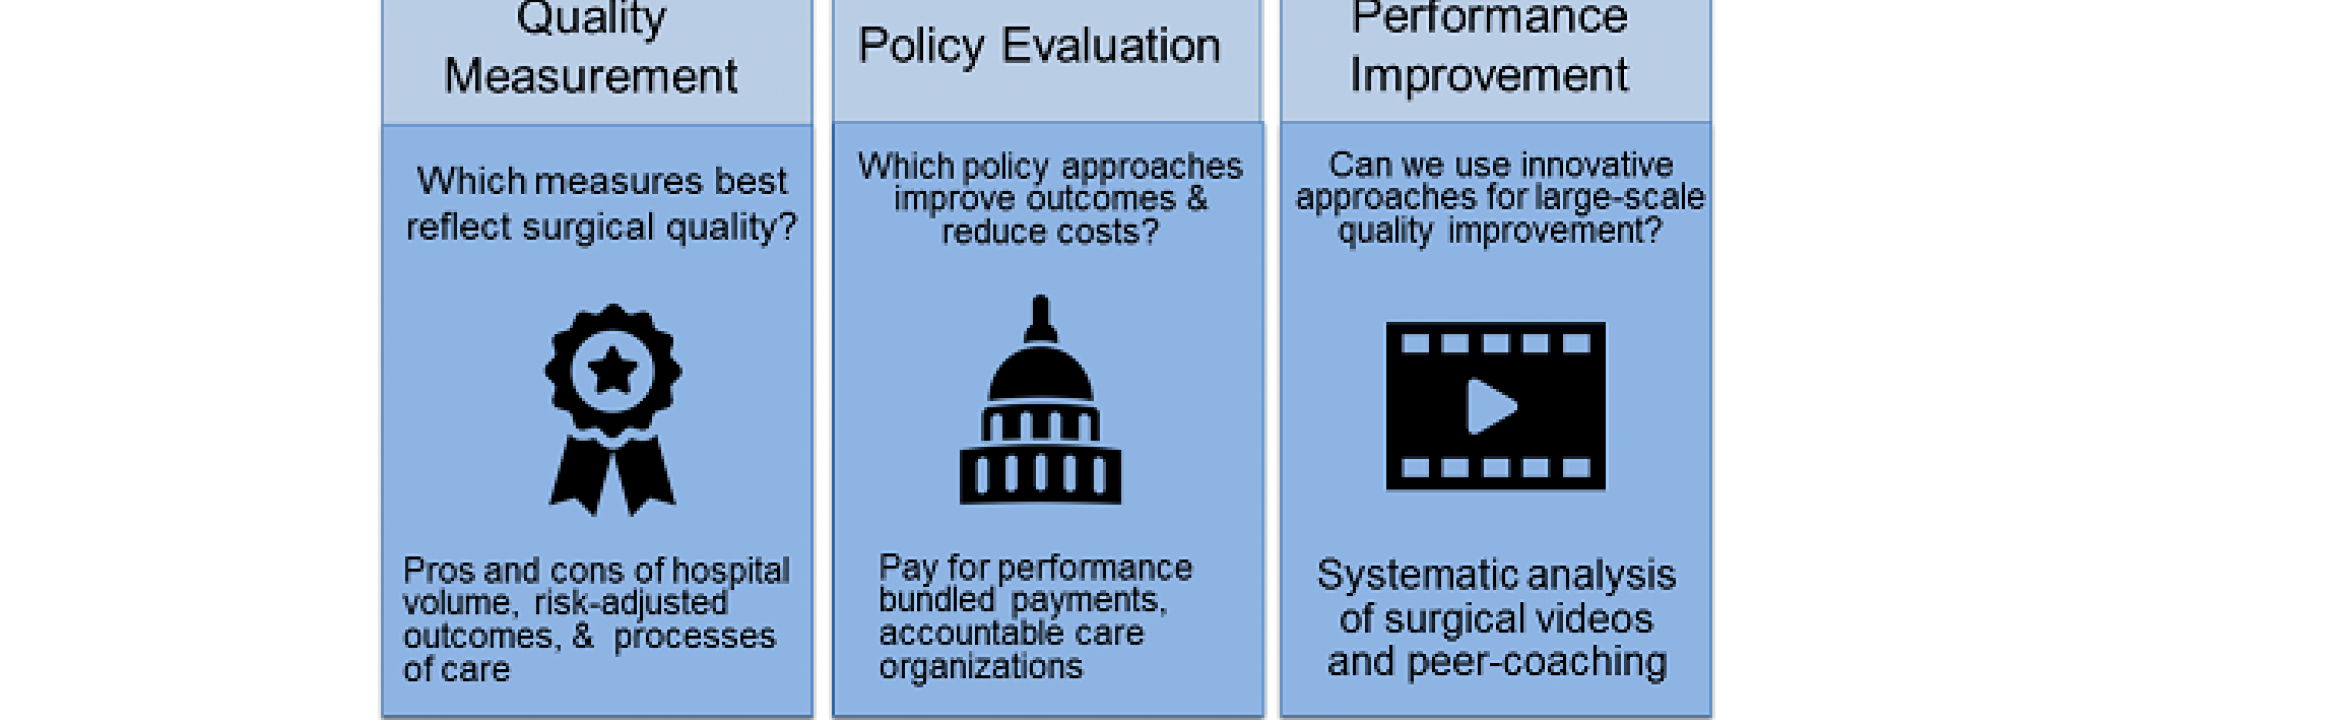 policy, quality and performance improvement